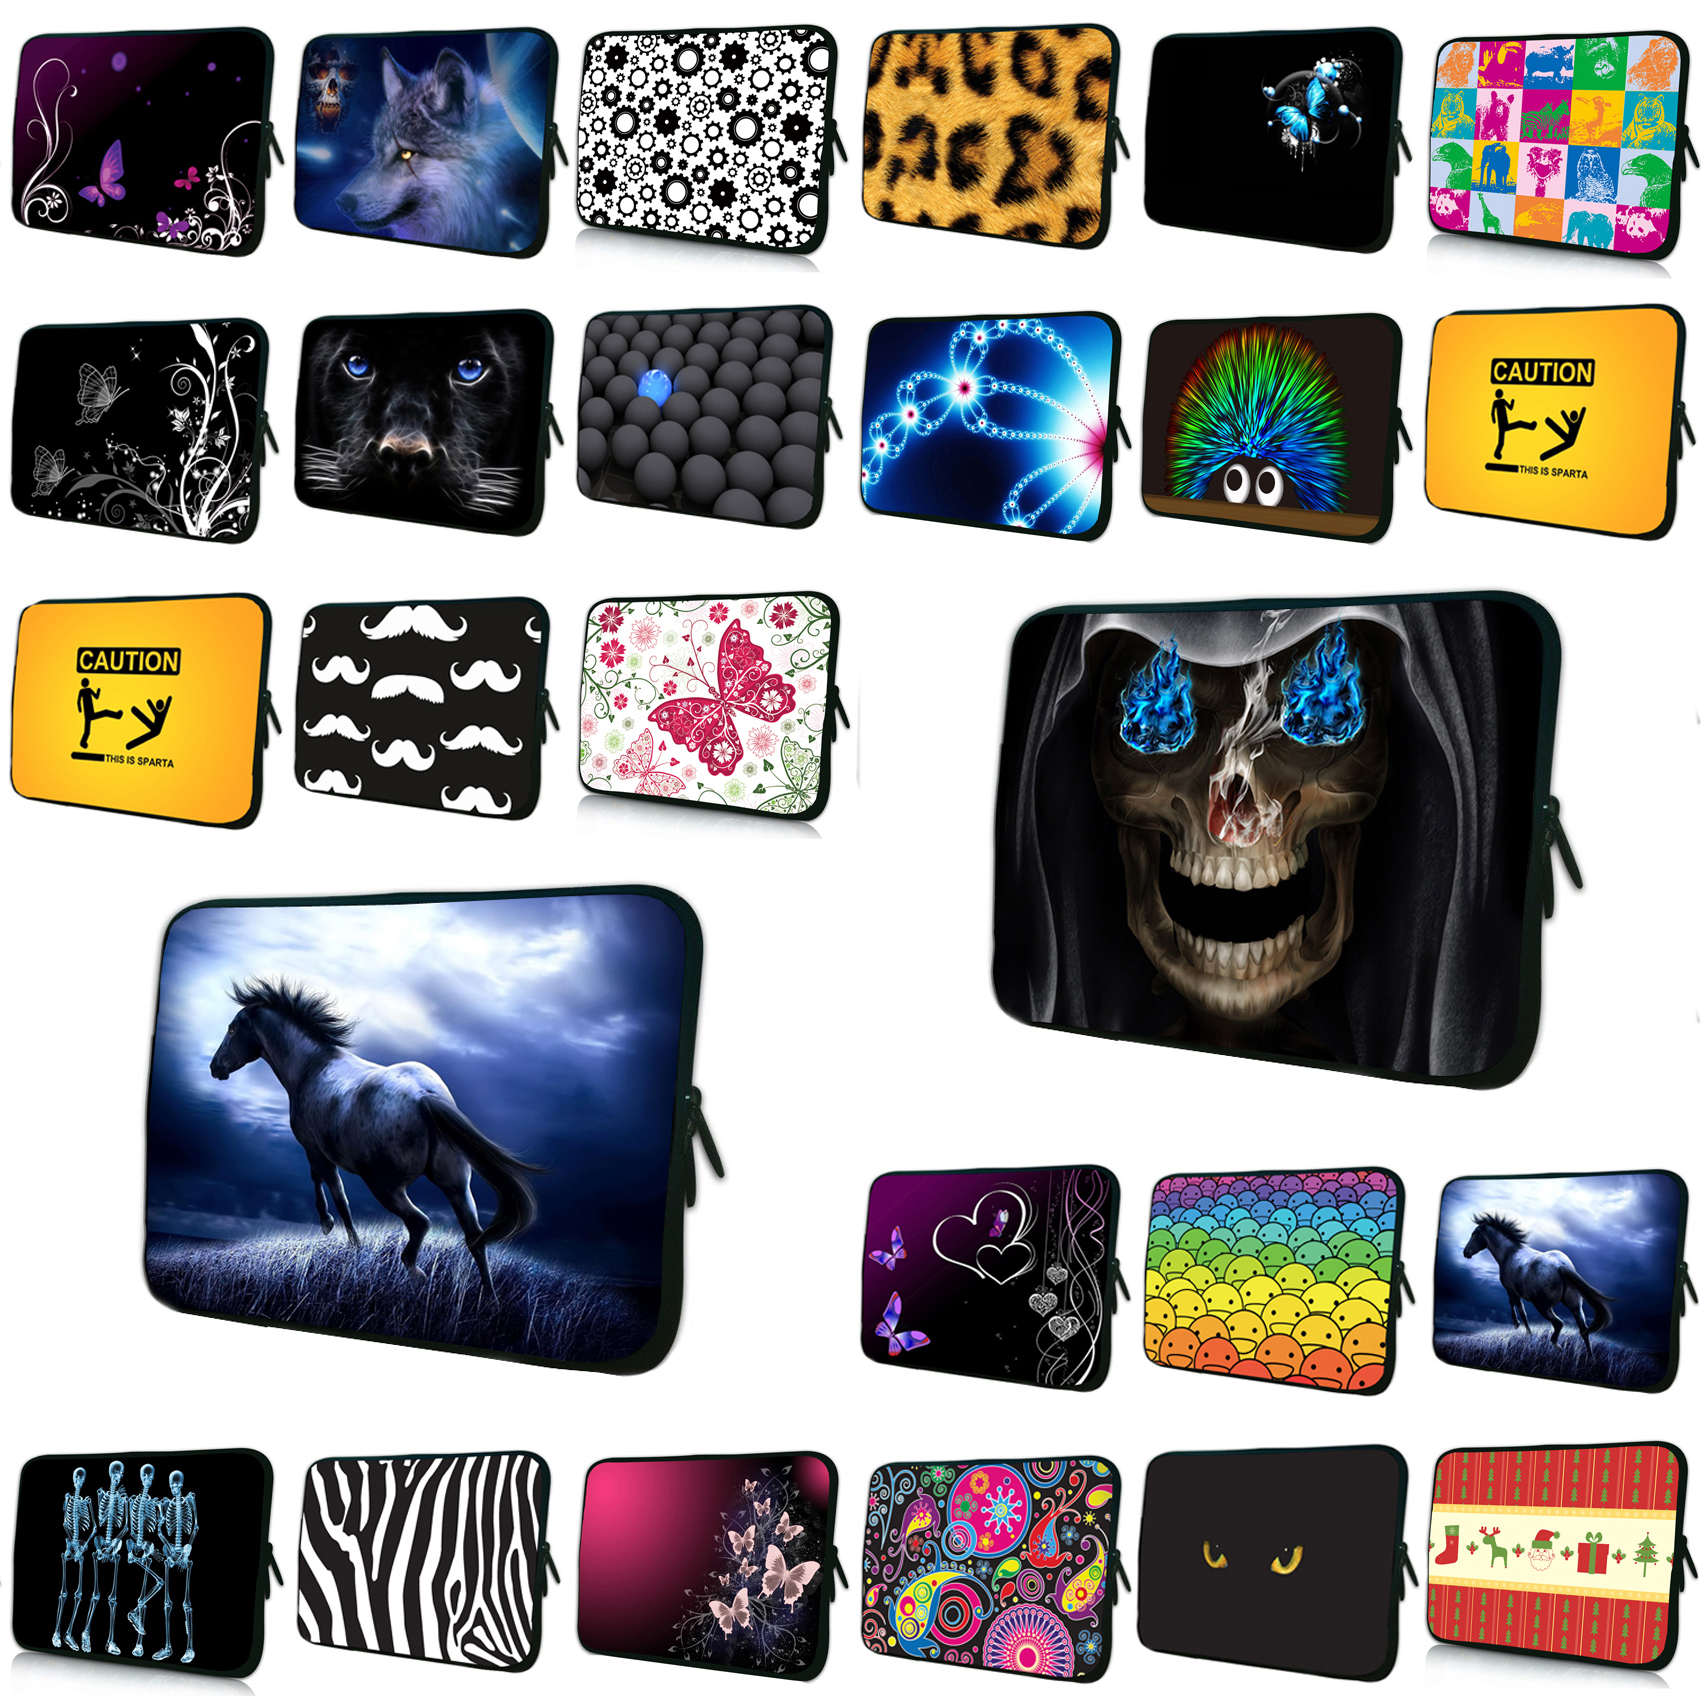 Tablet 10.1 Netbook Inner Case 7 10 12 13 14 15 17 Briefcase Men Bag Notebook Laptop Bag Shell Cases For Chuwi Lapbook Air 14.1 цена и фото